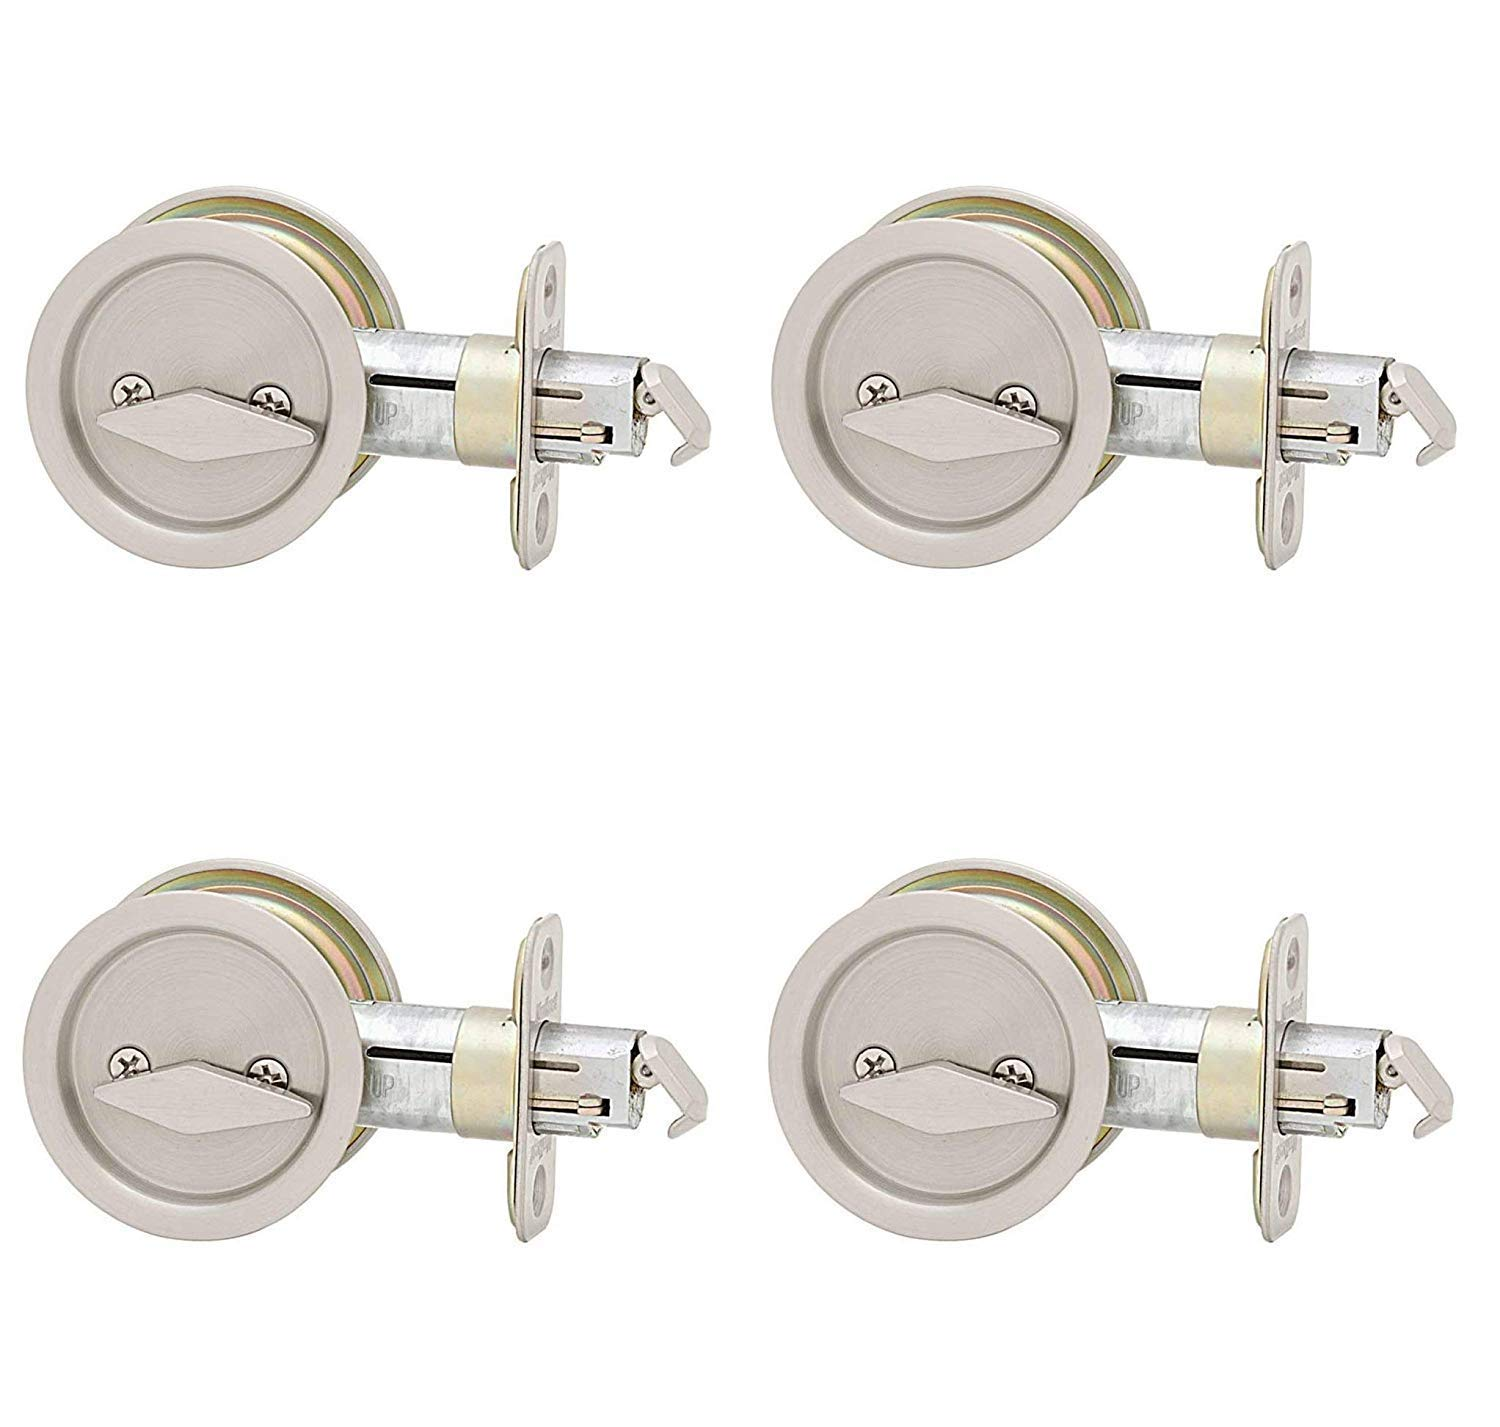 Kwikset 335 Round Bed/Bath Pocket Door Lock in Satin Nickel (Pack of 4)